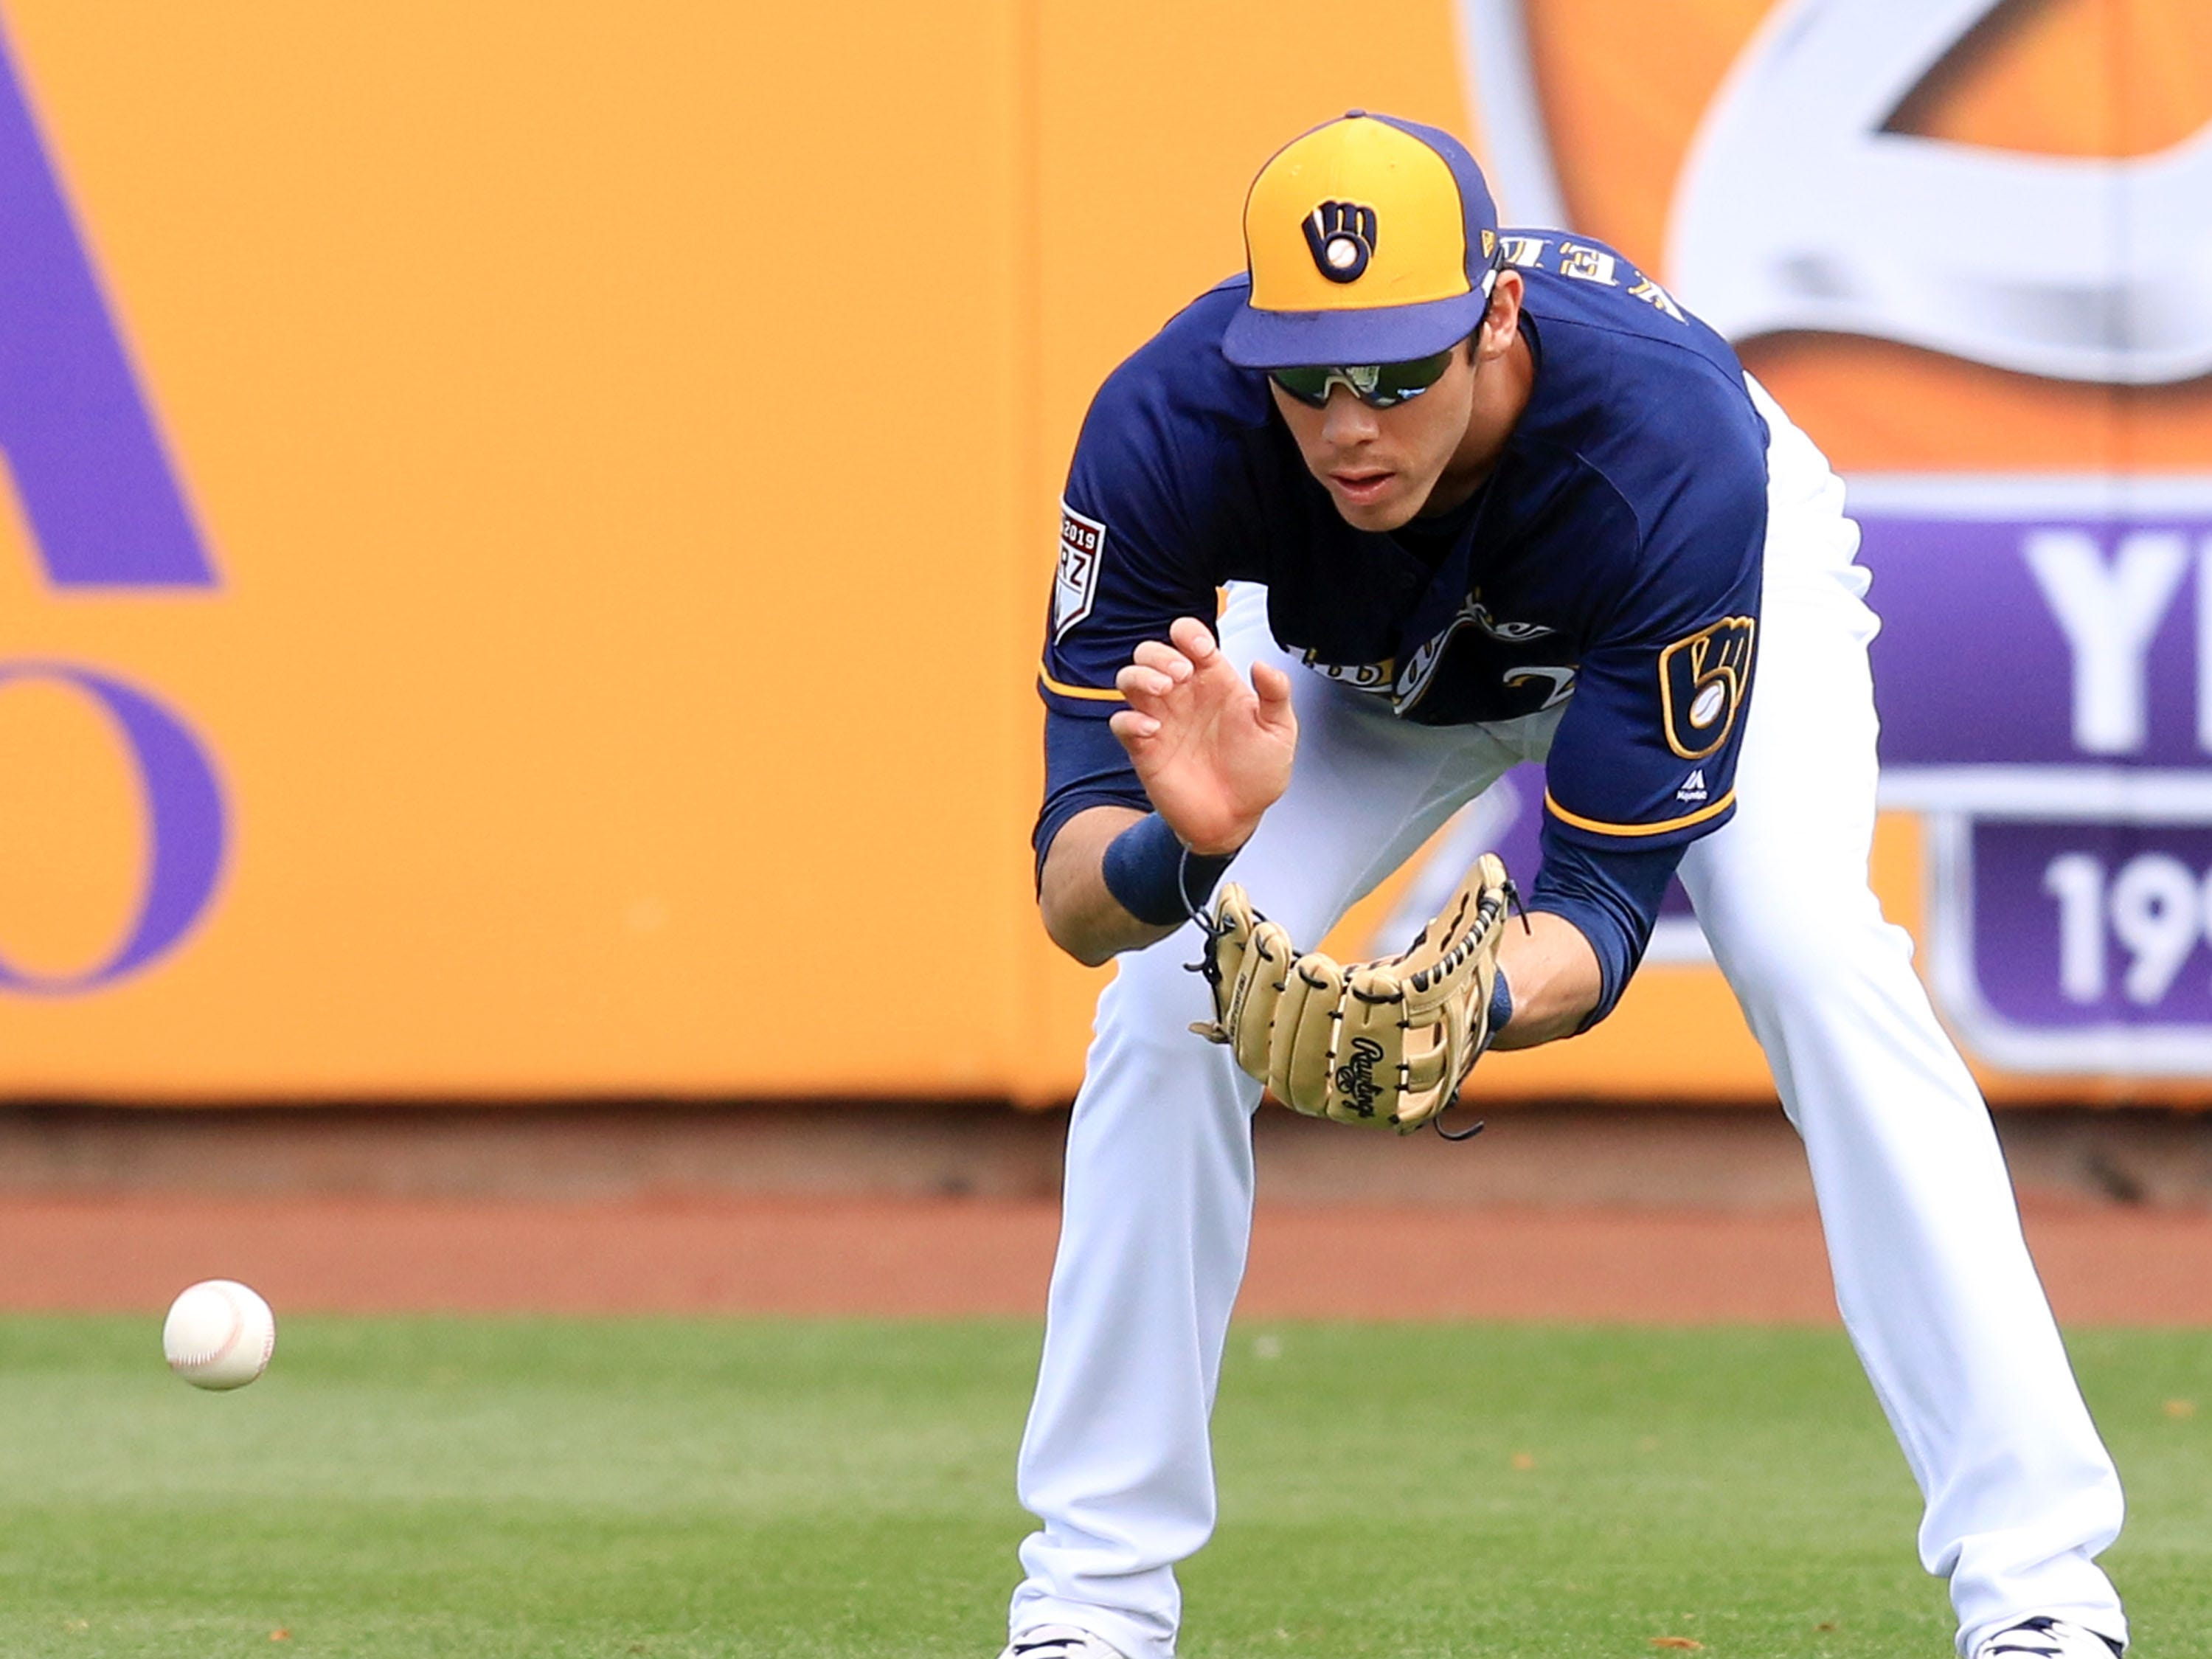 Brewers rightfielder Christain Yelich fields a base against the Dodgers on Thursday.